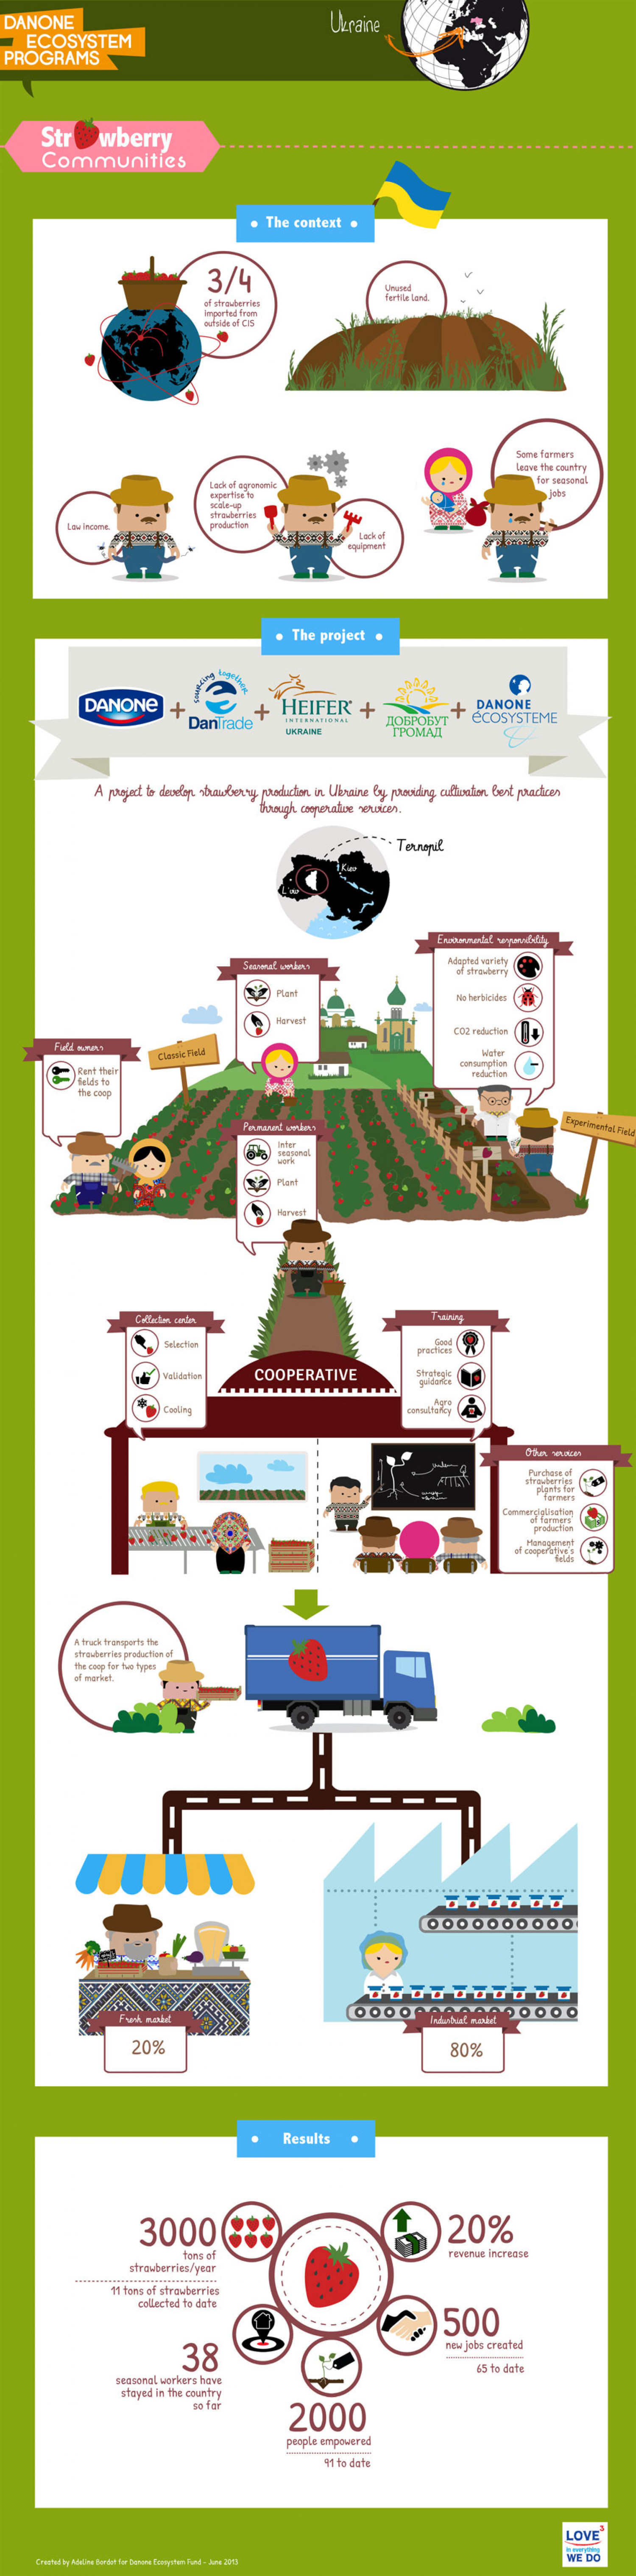 Strawberry Communities Infographic